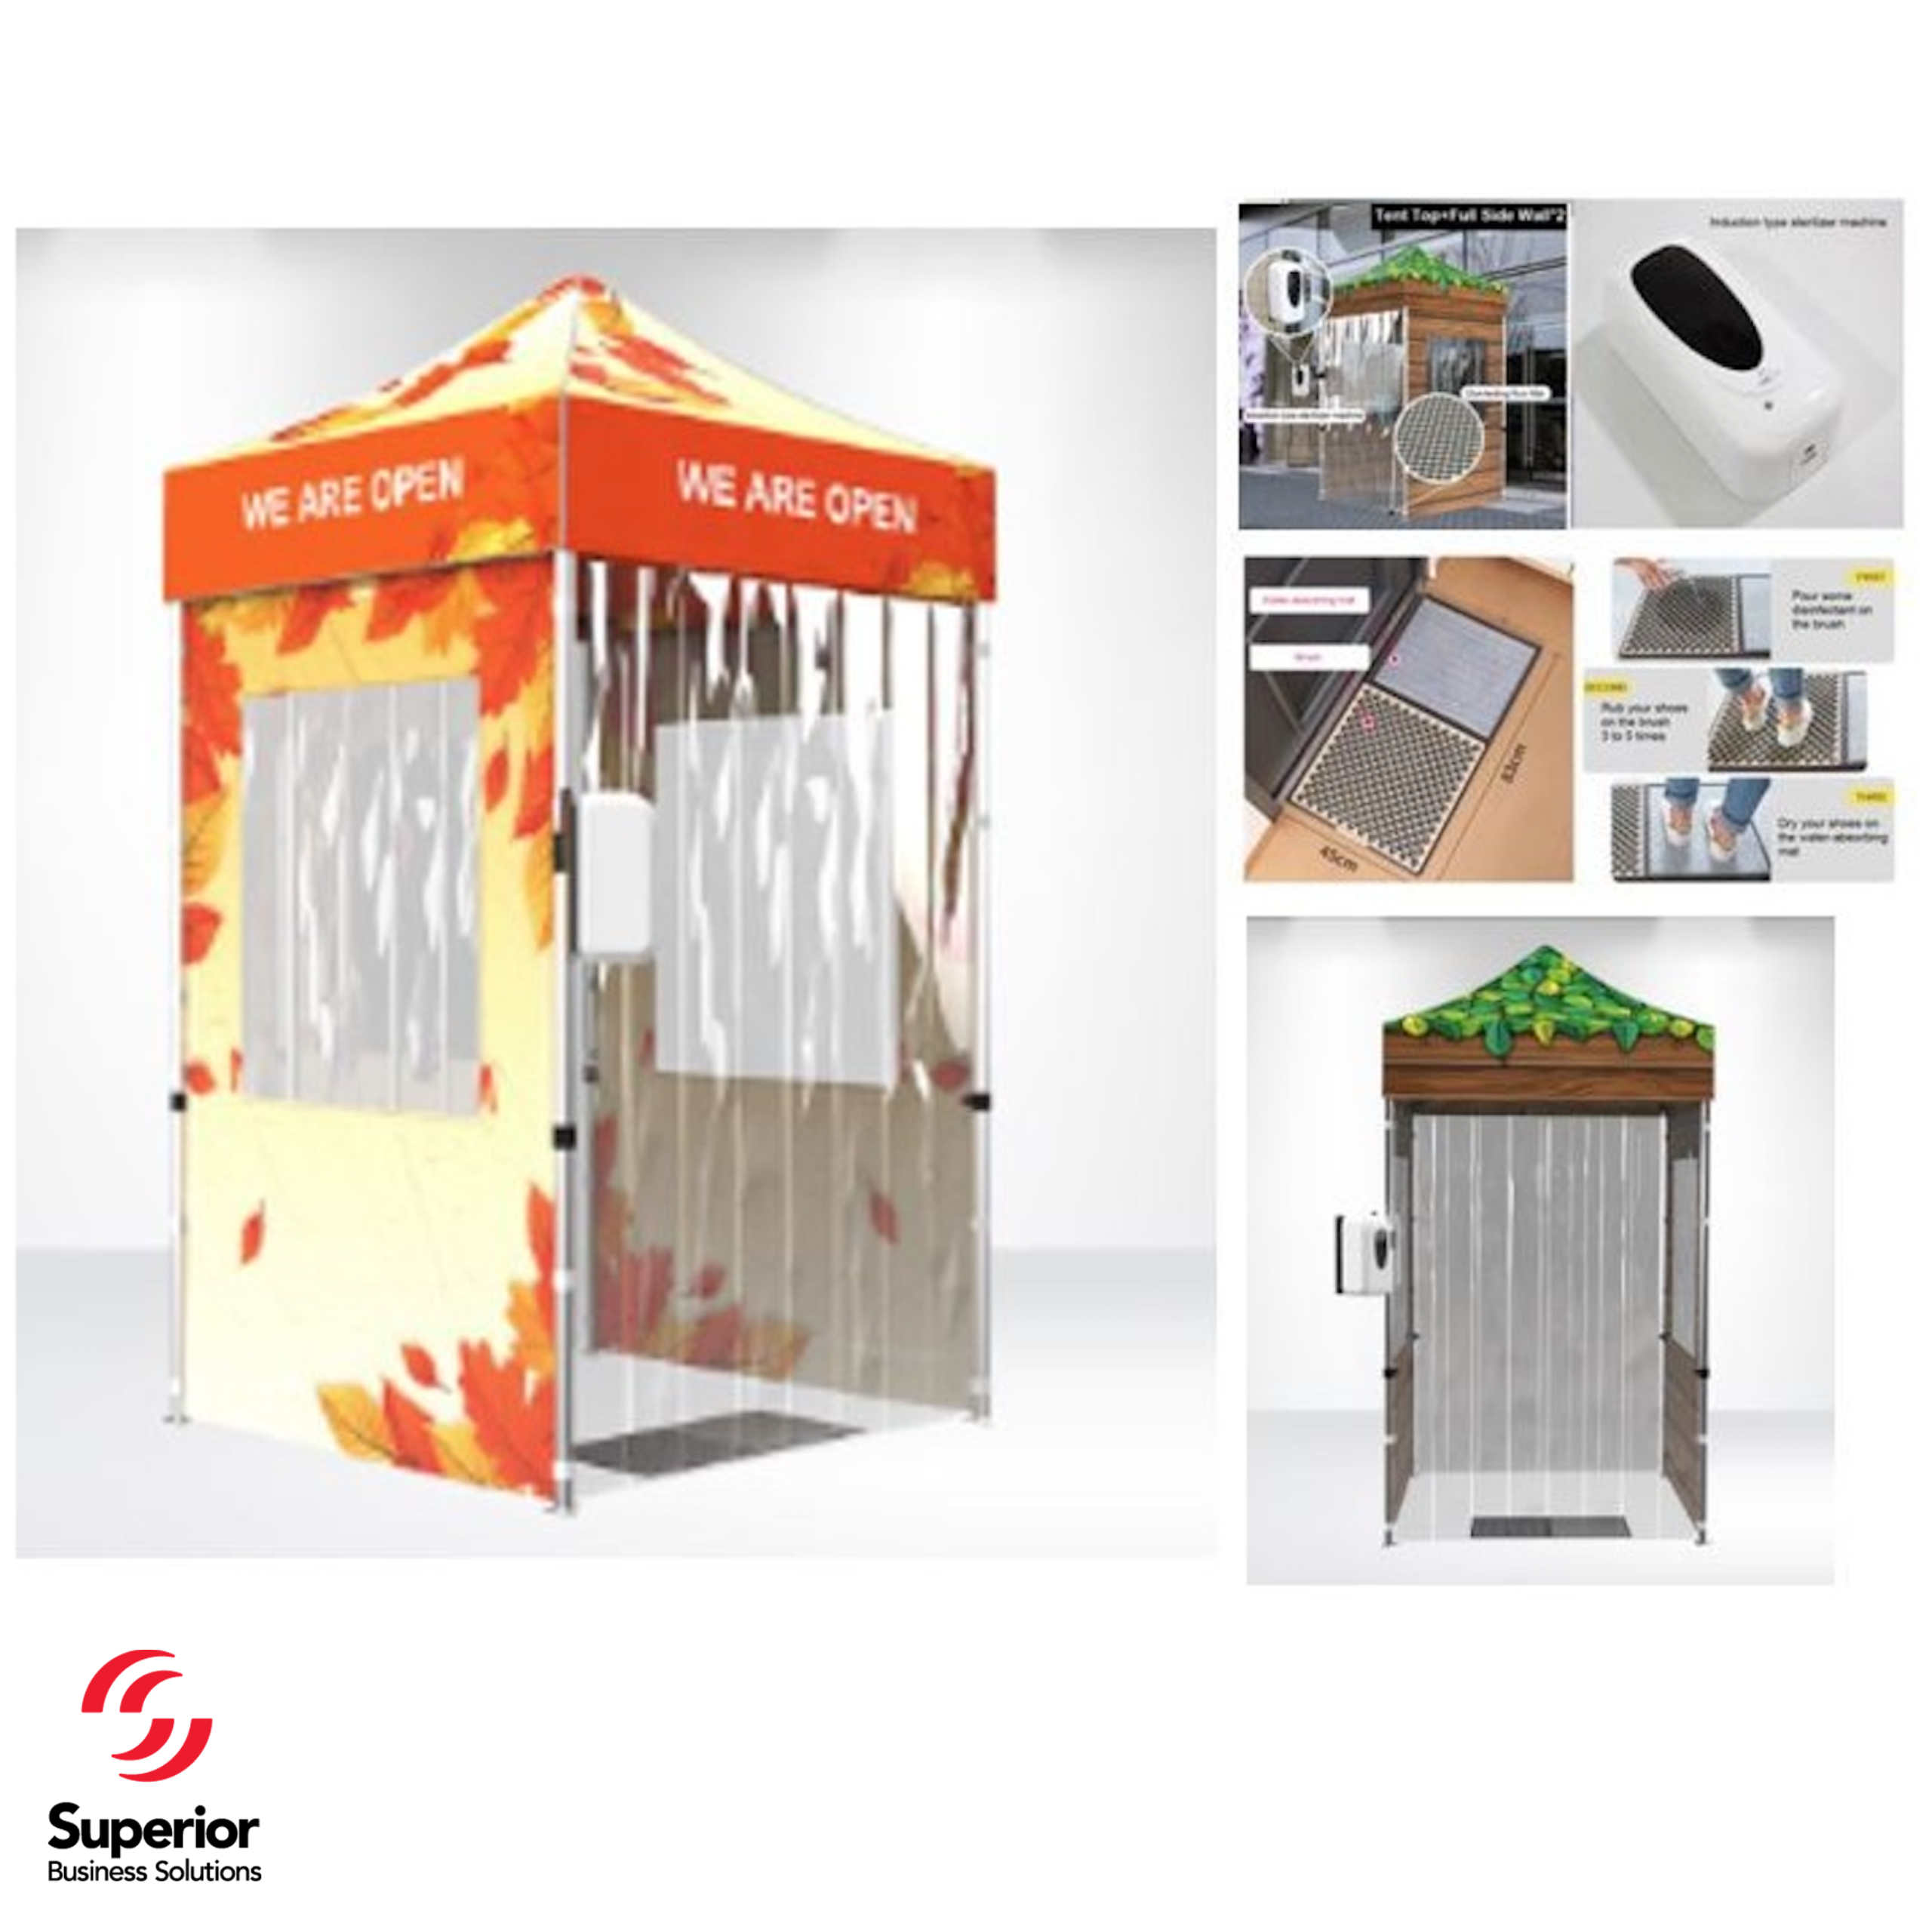 5 Ft. Entrance Tent with Hand Sterilizer and Disinfecting Floor Mat and Holder - FULL KIT BRANDED